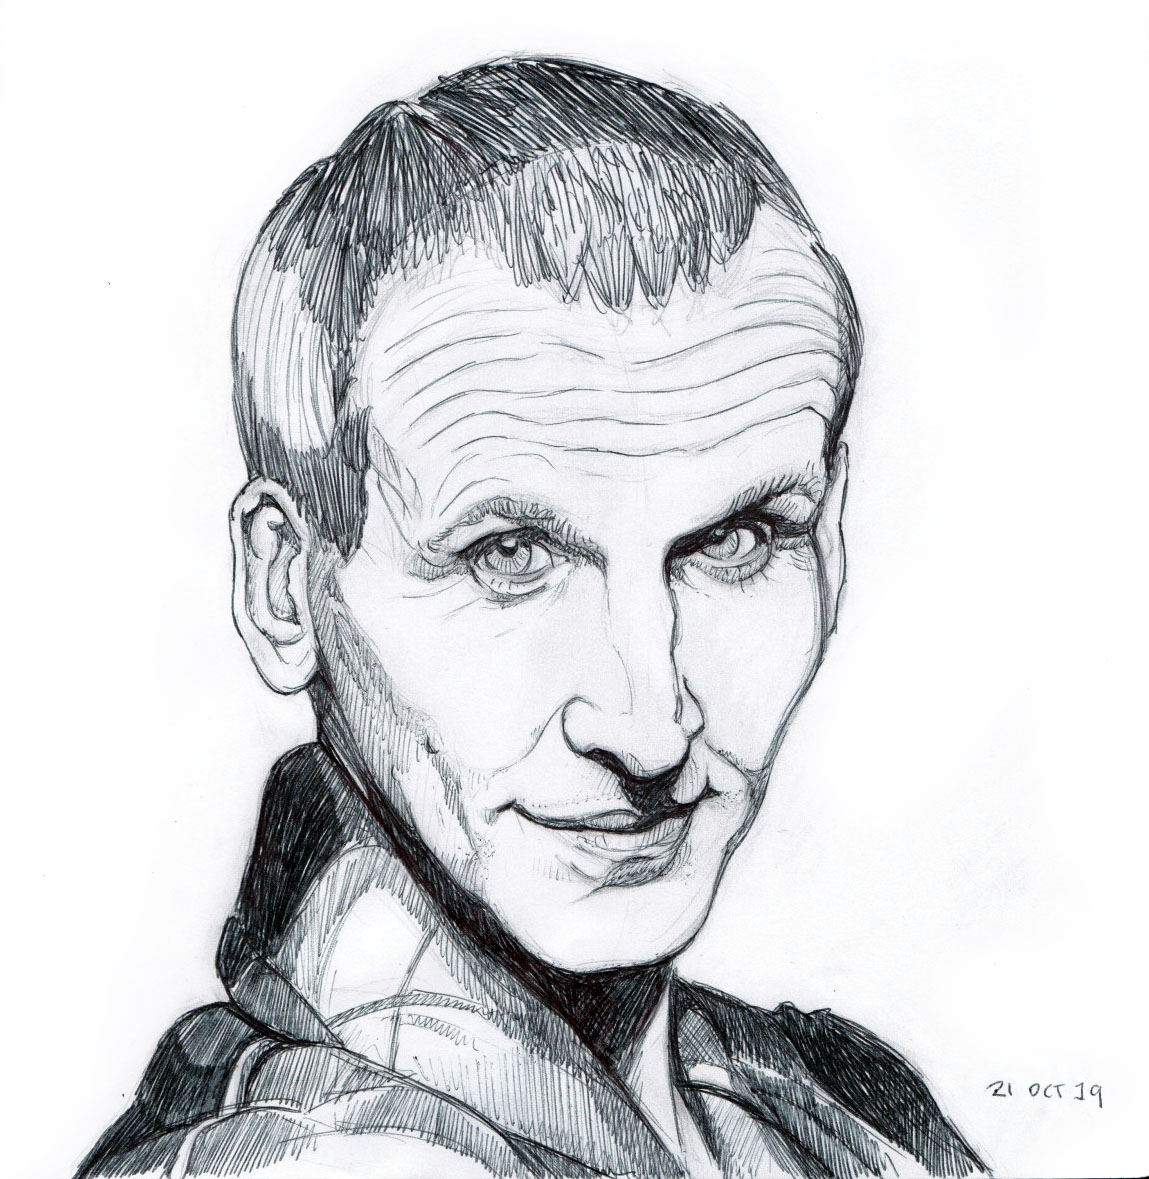 Inktober 2019 - 20 Dr Who (Christopher Eccleston)